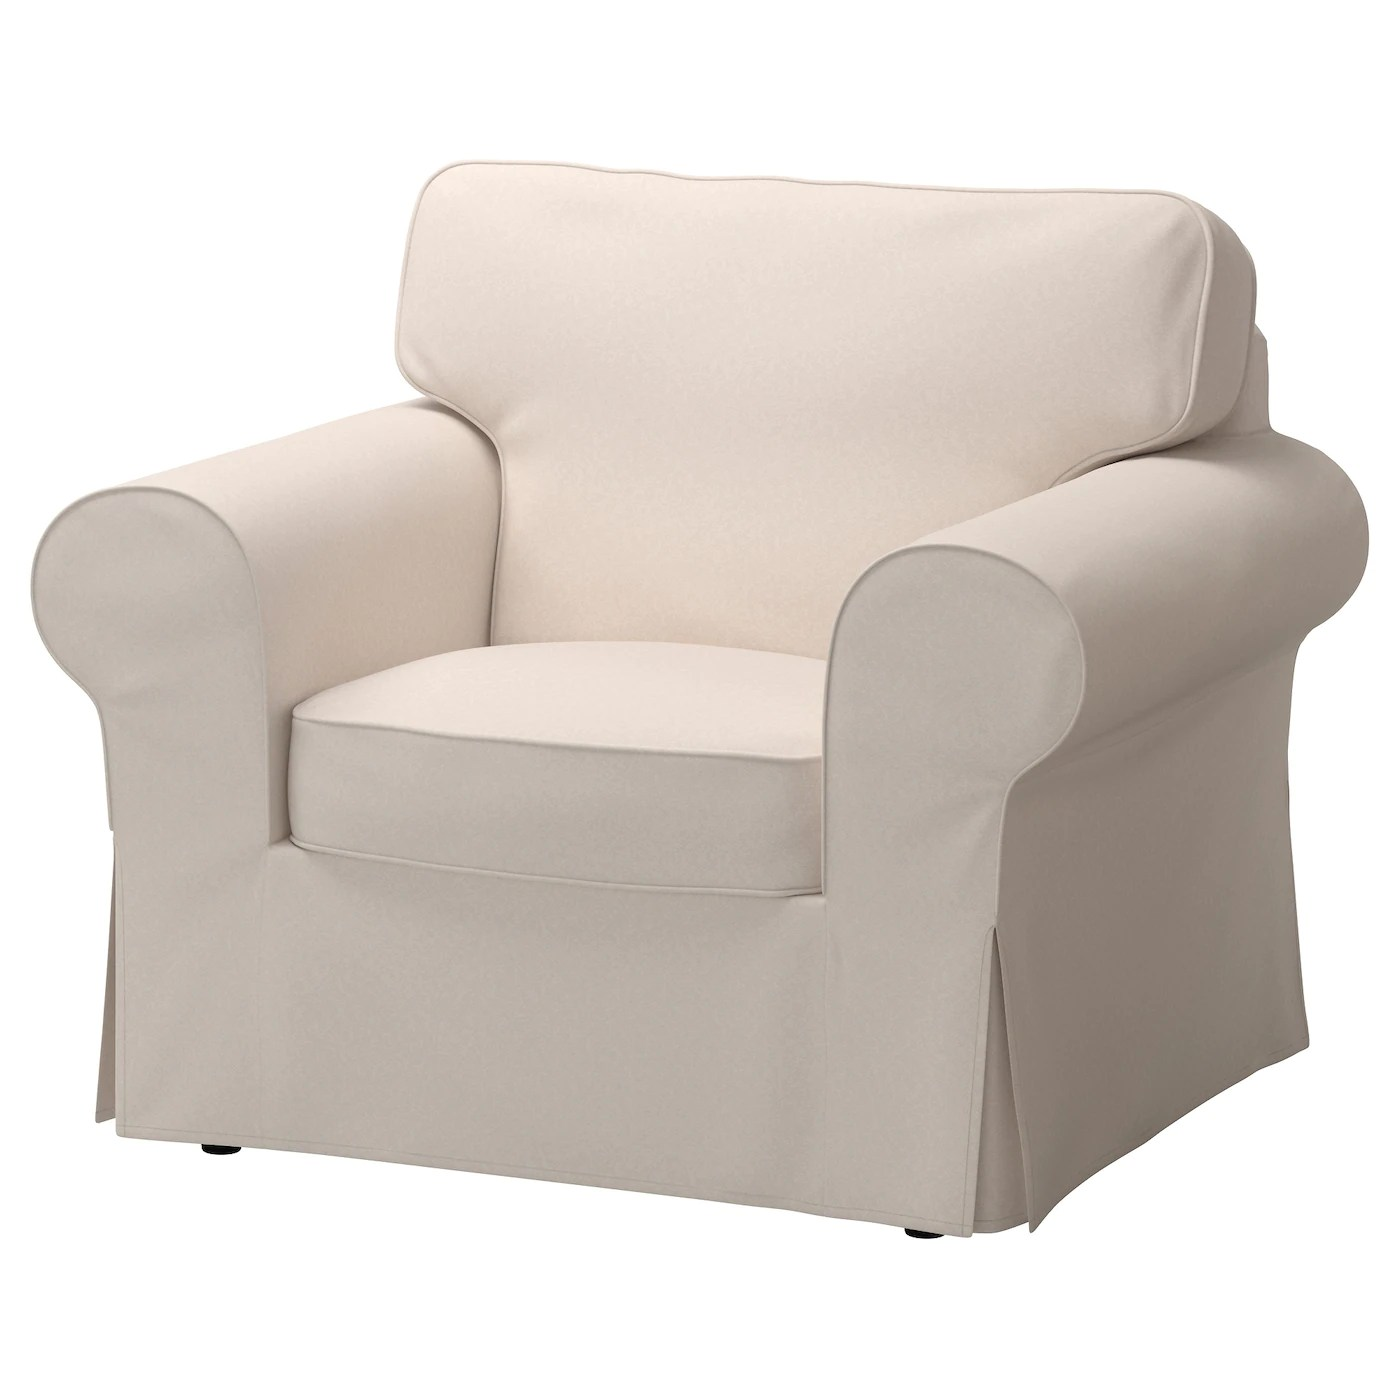 ikea velcro chair covers vibrating sex ektorp two seat sofa lofallet beige